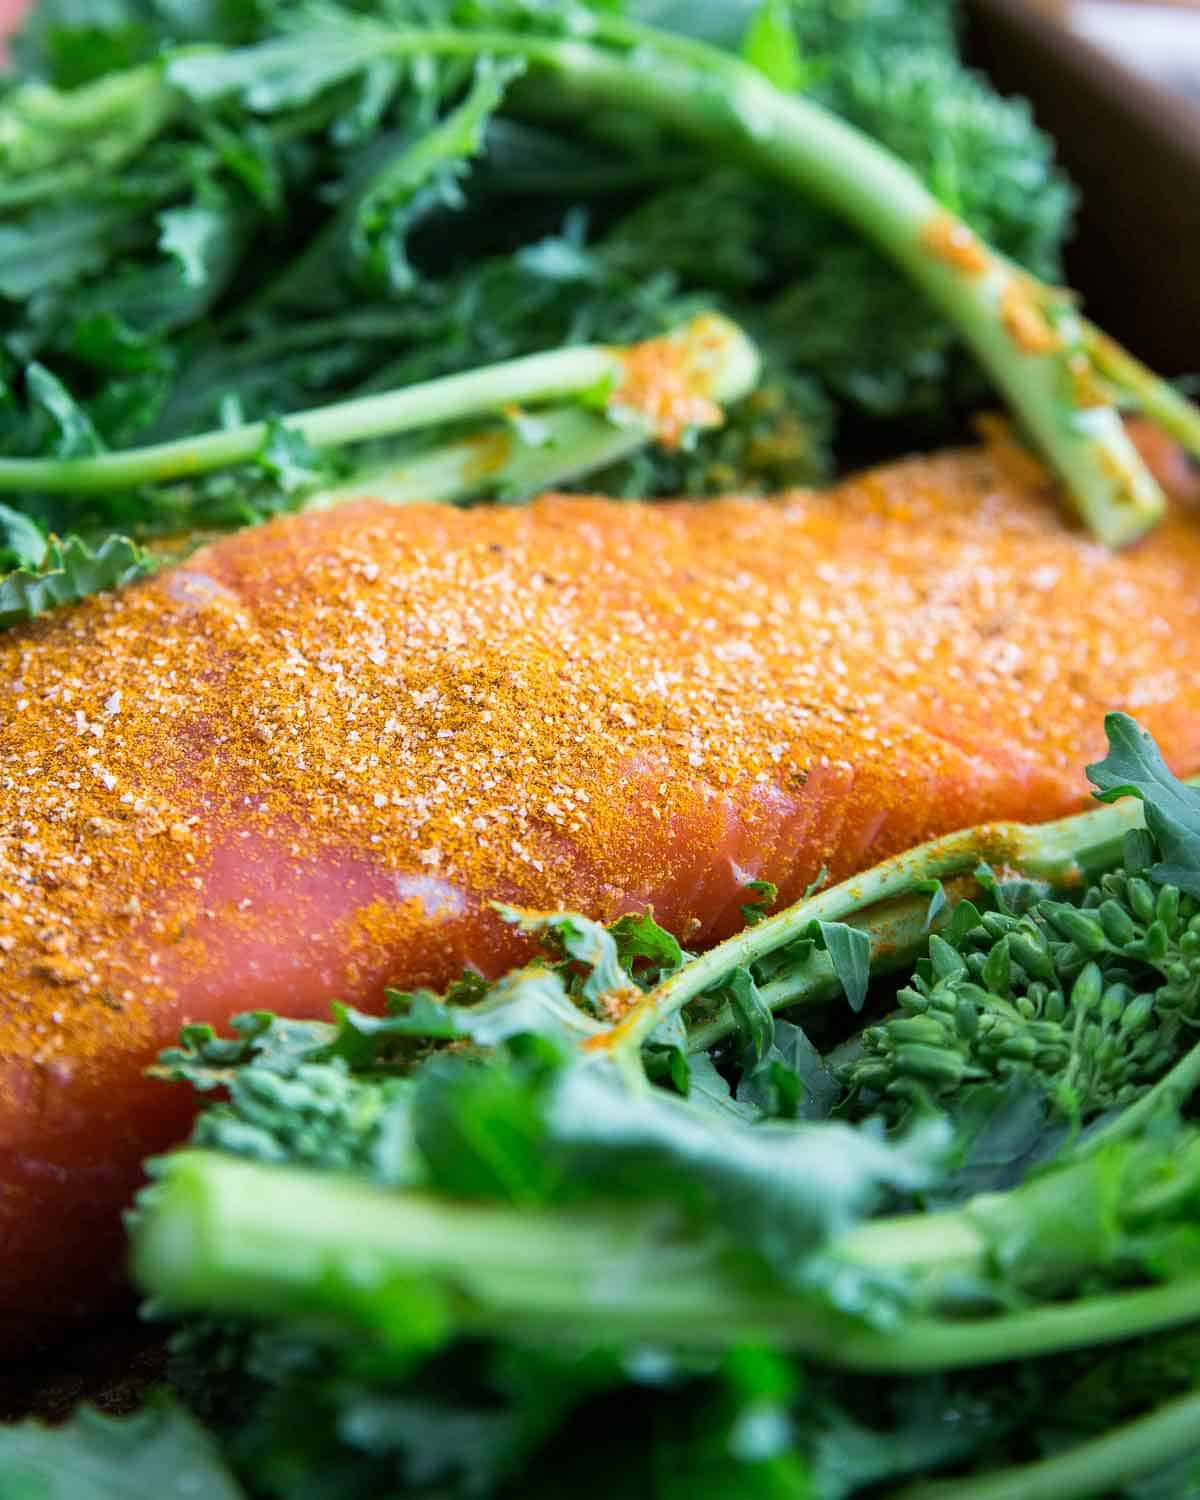 This easy turmeric based spice rub is perfect on wild salmon for a quick, easy and healthy dinner.